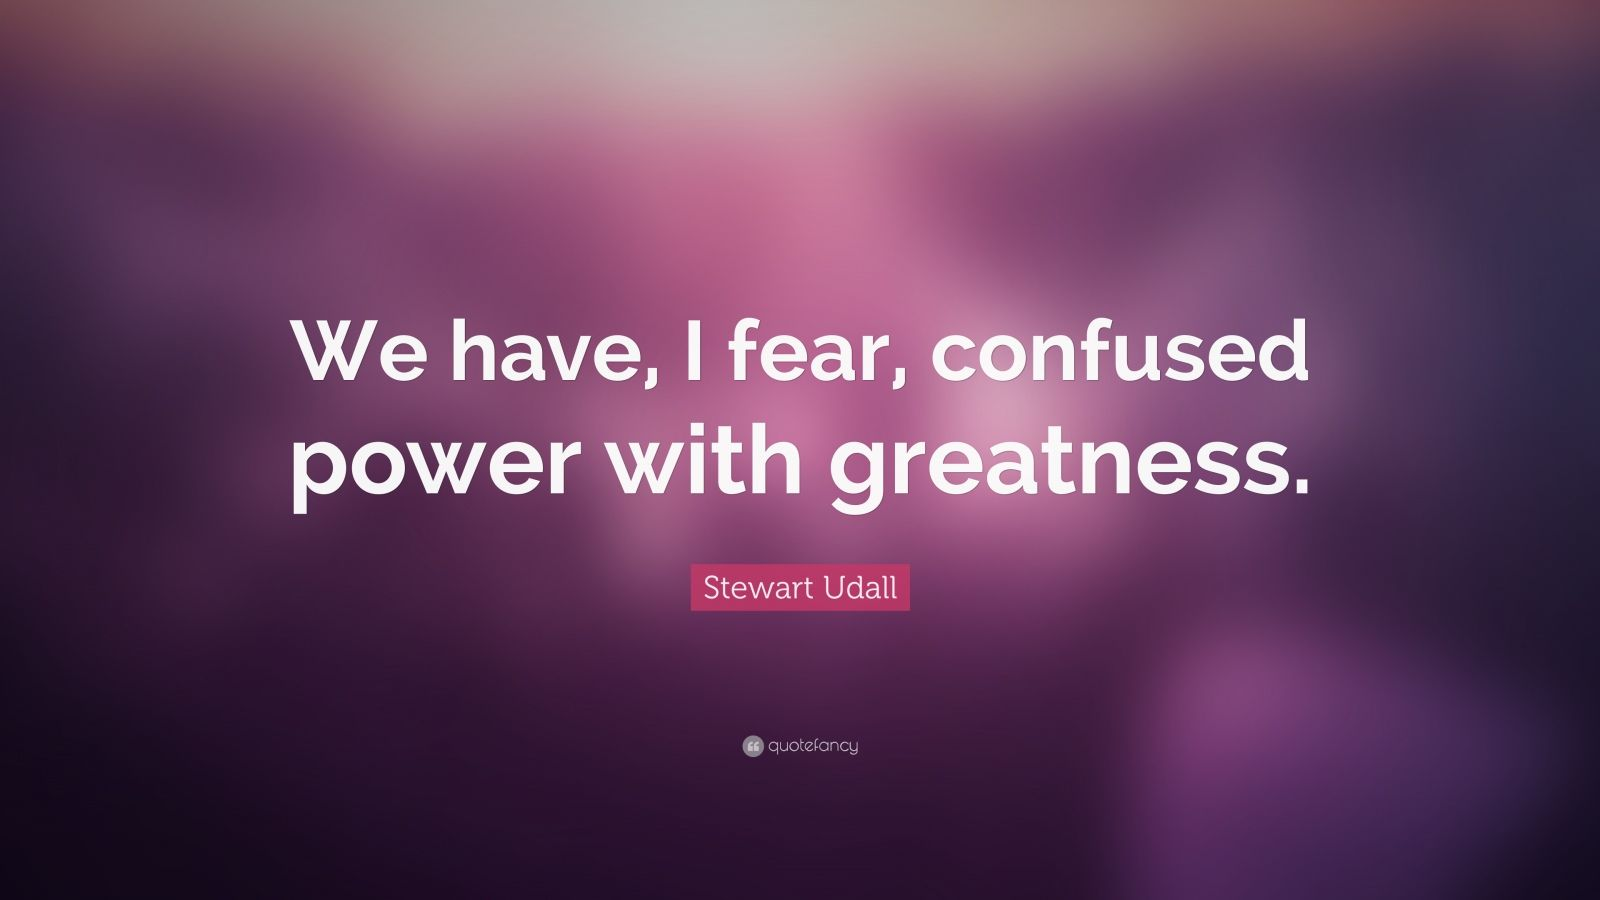 have we confused power with greatness